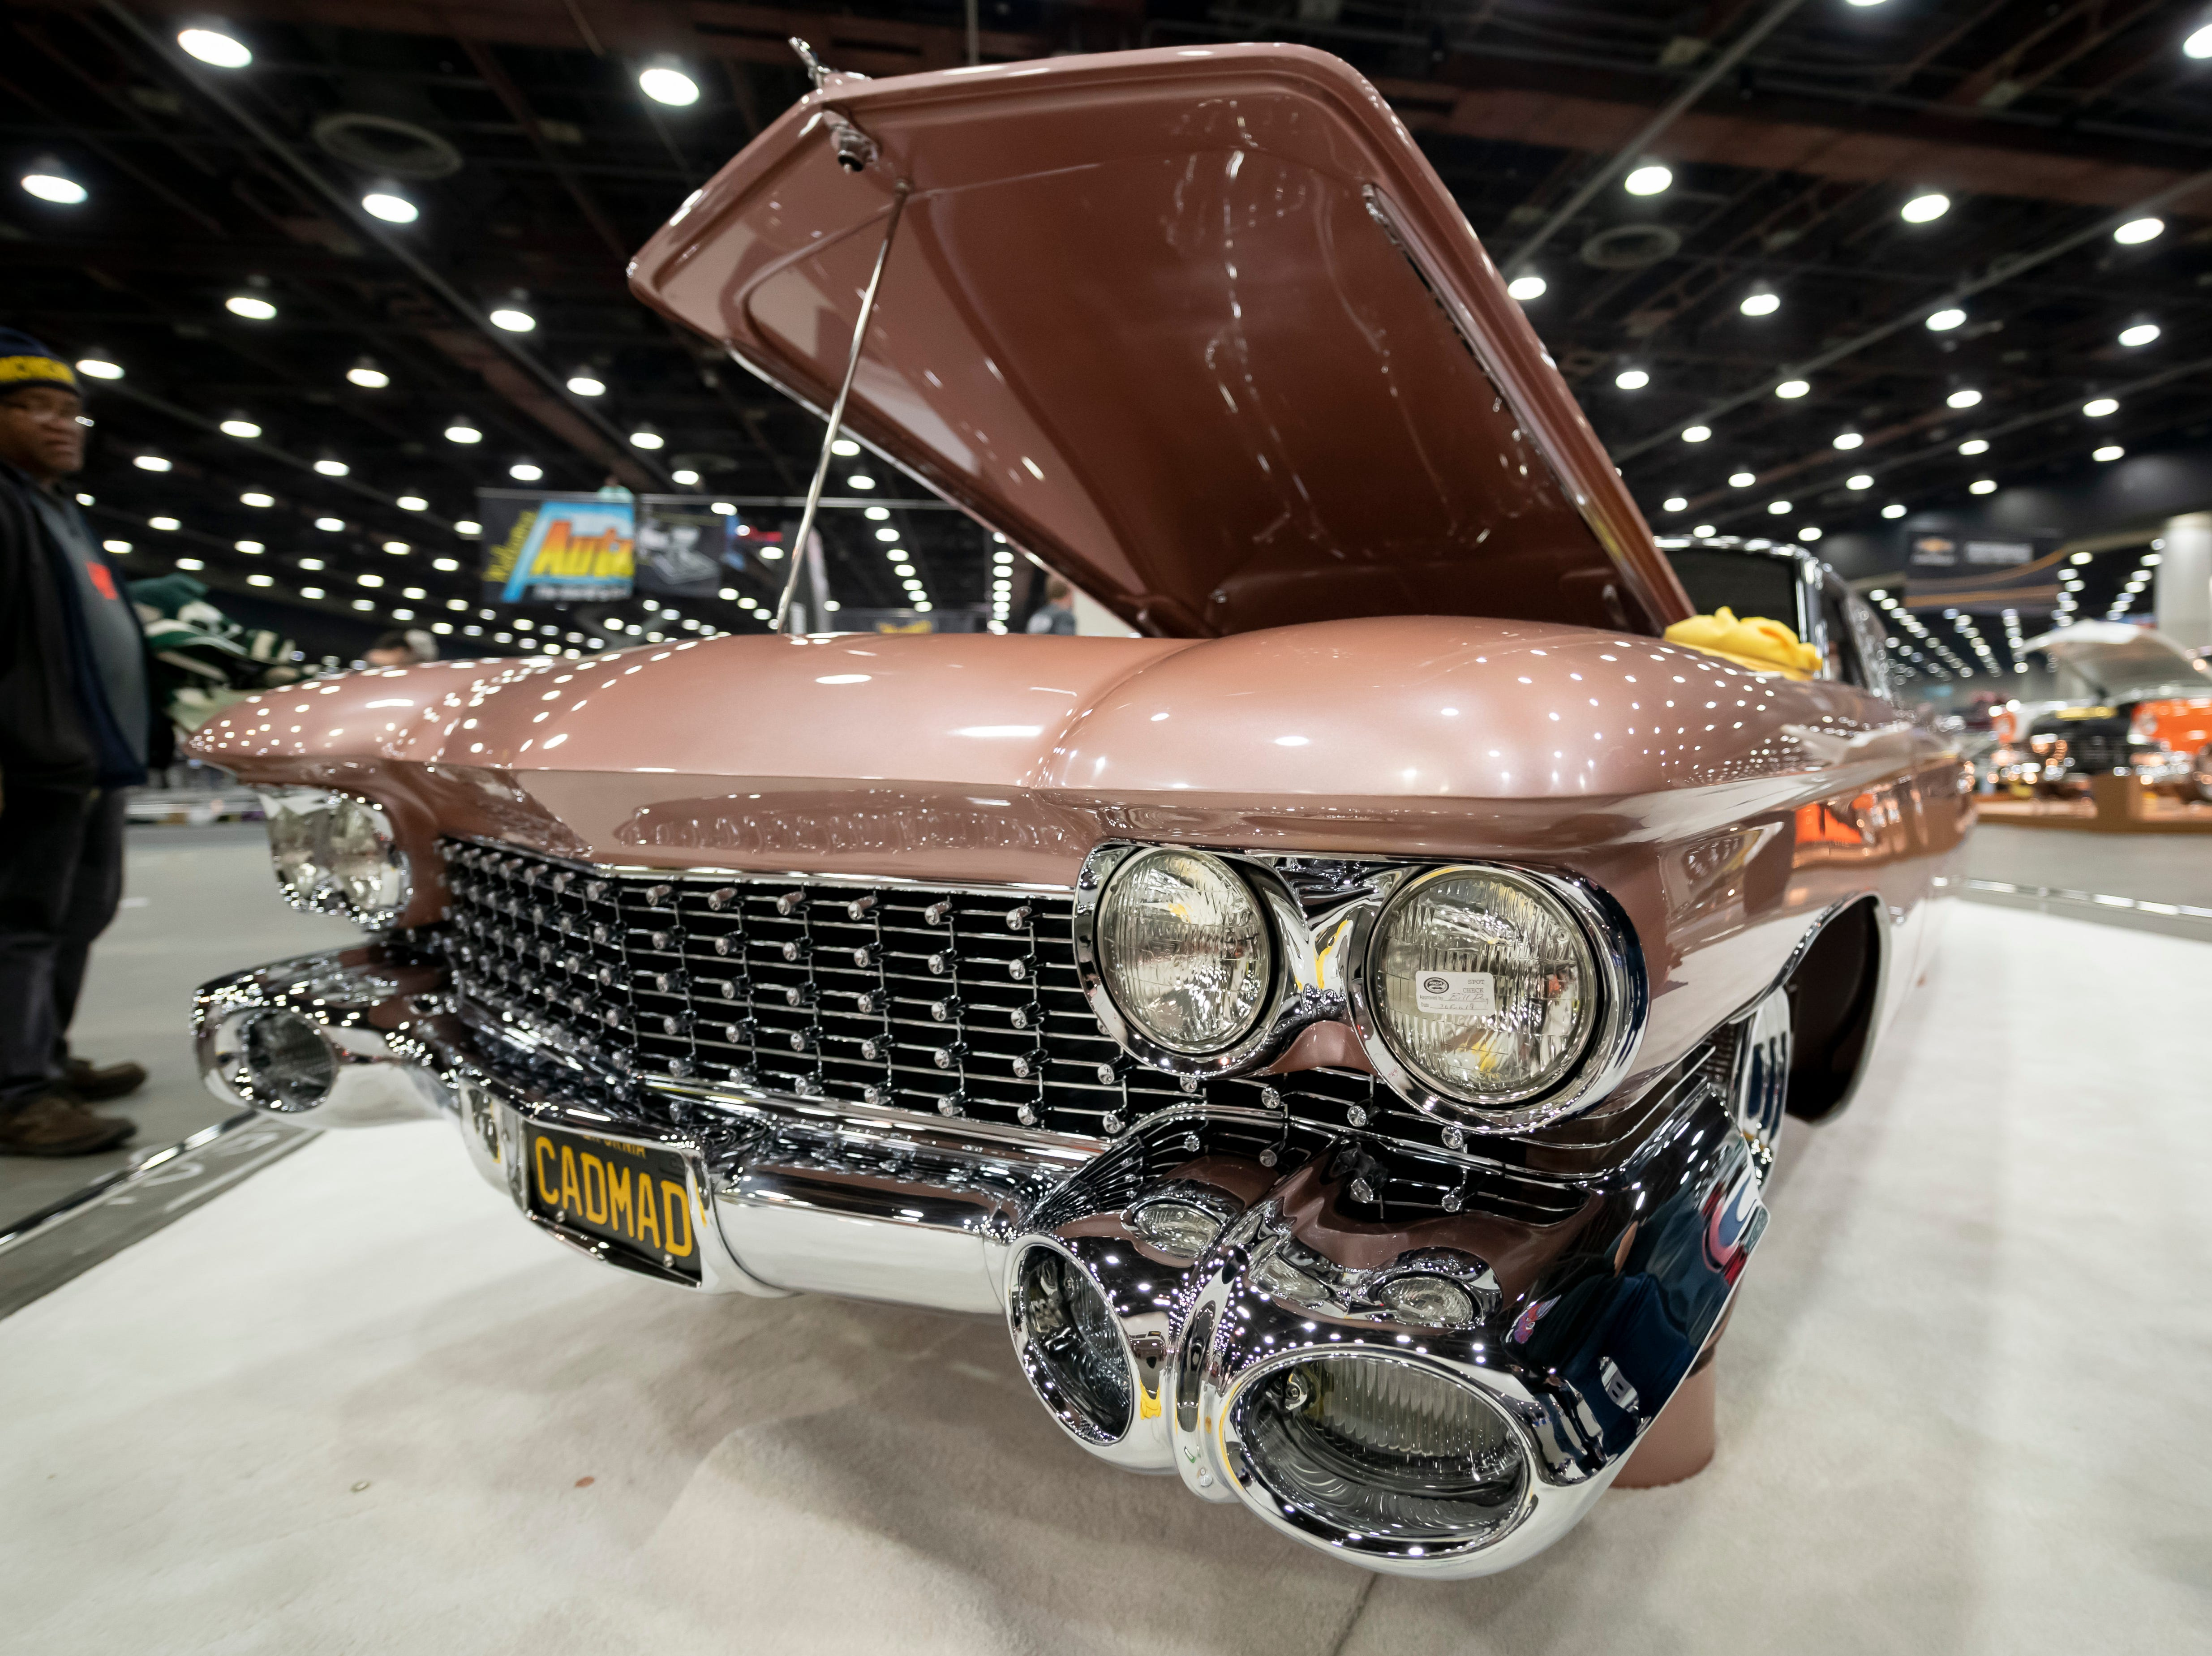 A 1959 Cadillac, nicknamed Cadmad and owned by Steve Barton, is on display at Detroit Autorama.